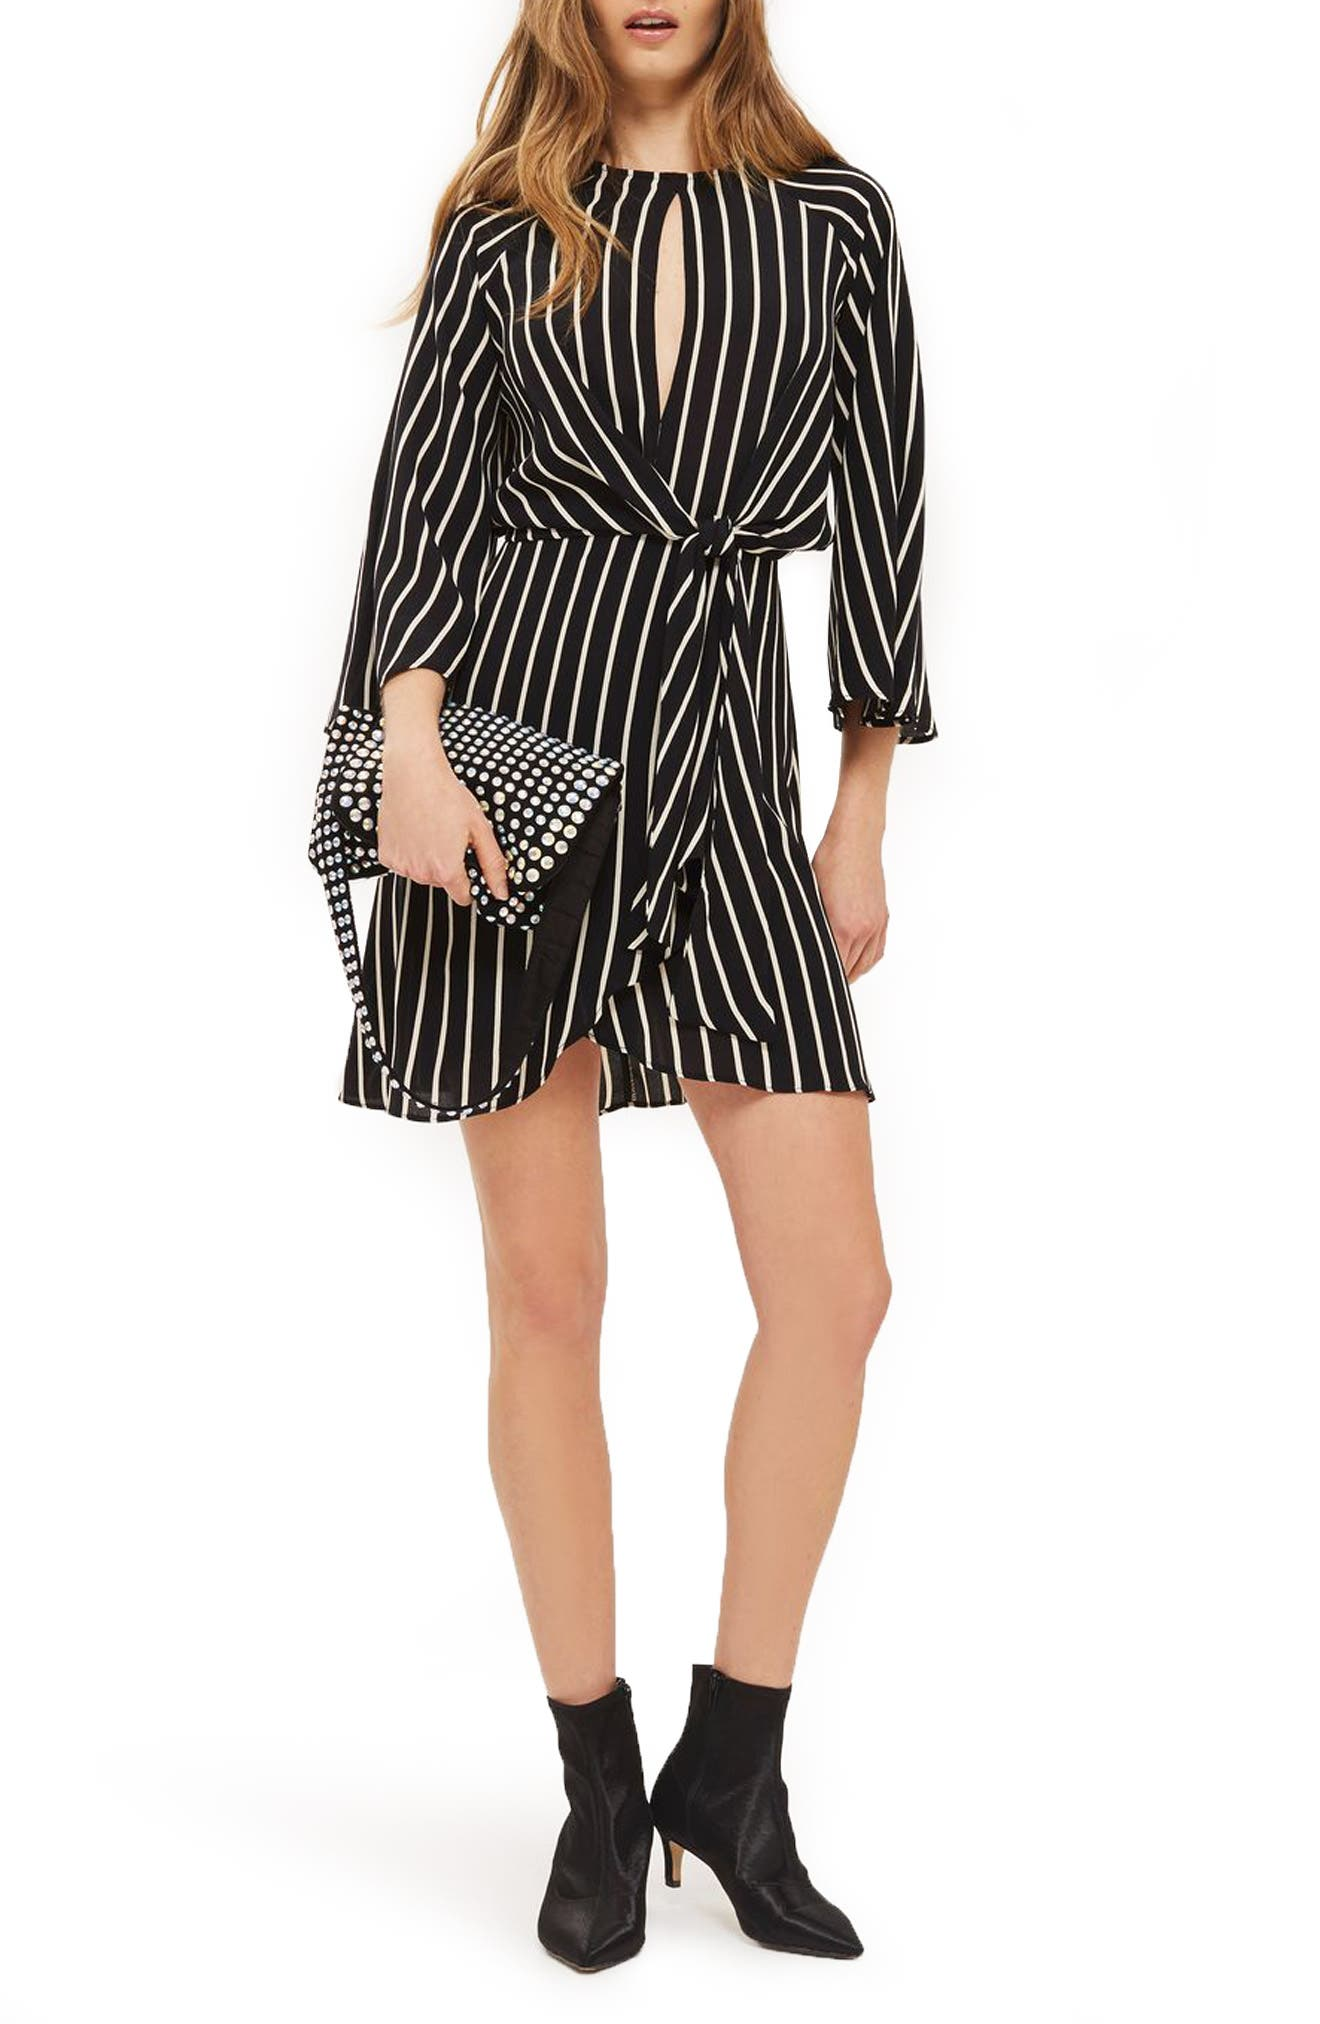 Topshop Stripe Knot Front Minidress